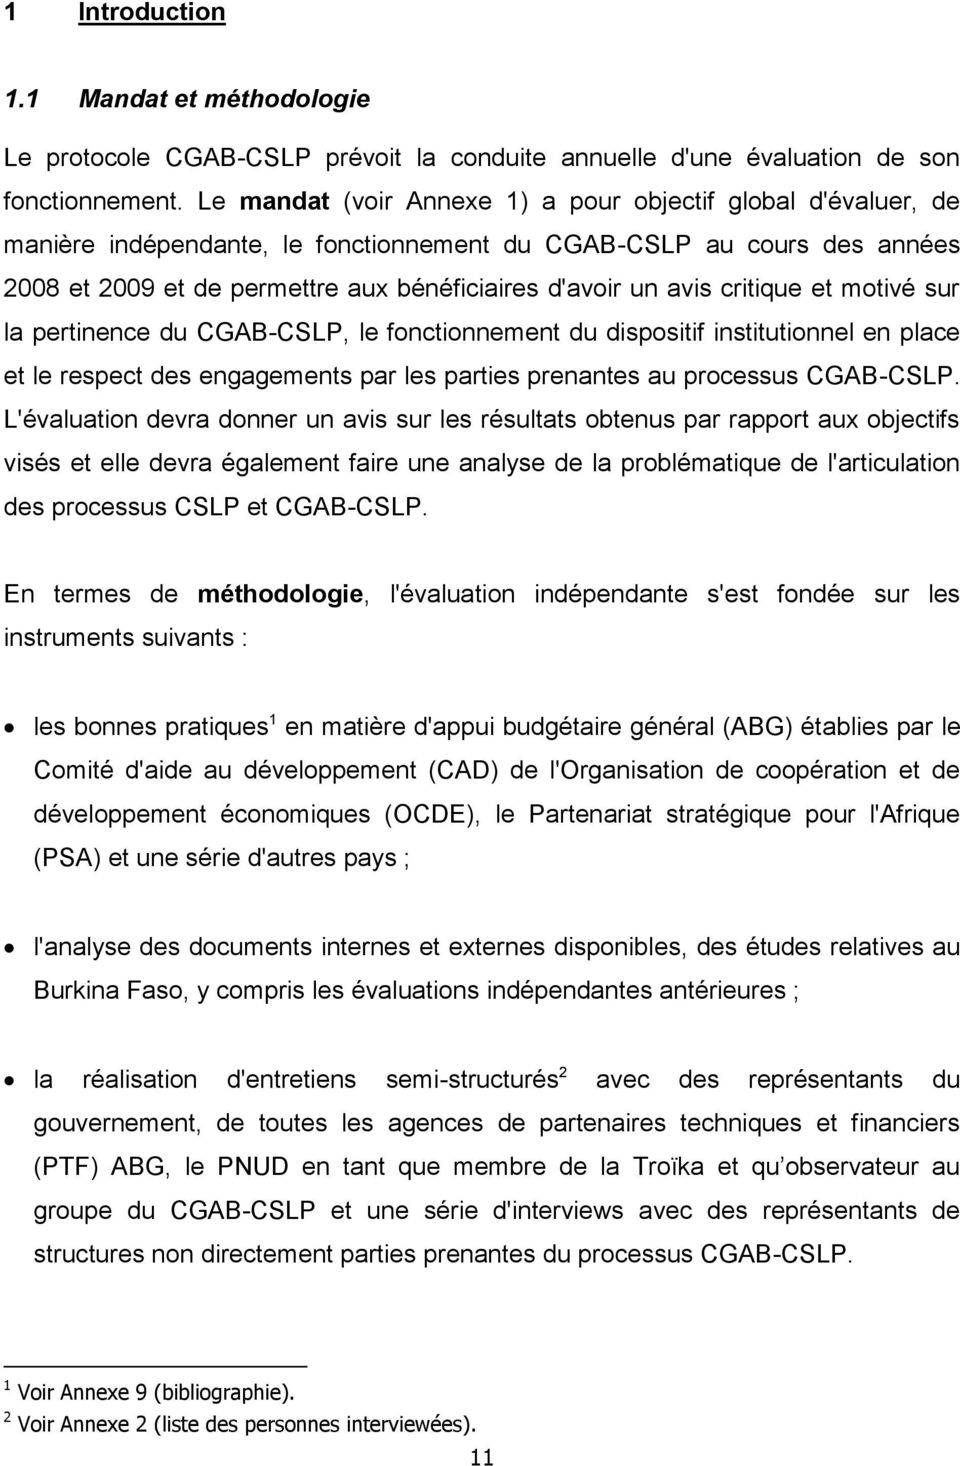 critique et motivé sur la pertinence du CGAB-CSLP, le fonctionnement du dispositif institutionnel en place et le respect des engagements par les parties prenantes au processus CGAB-CSLP.